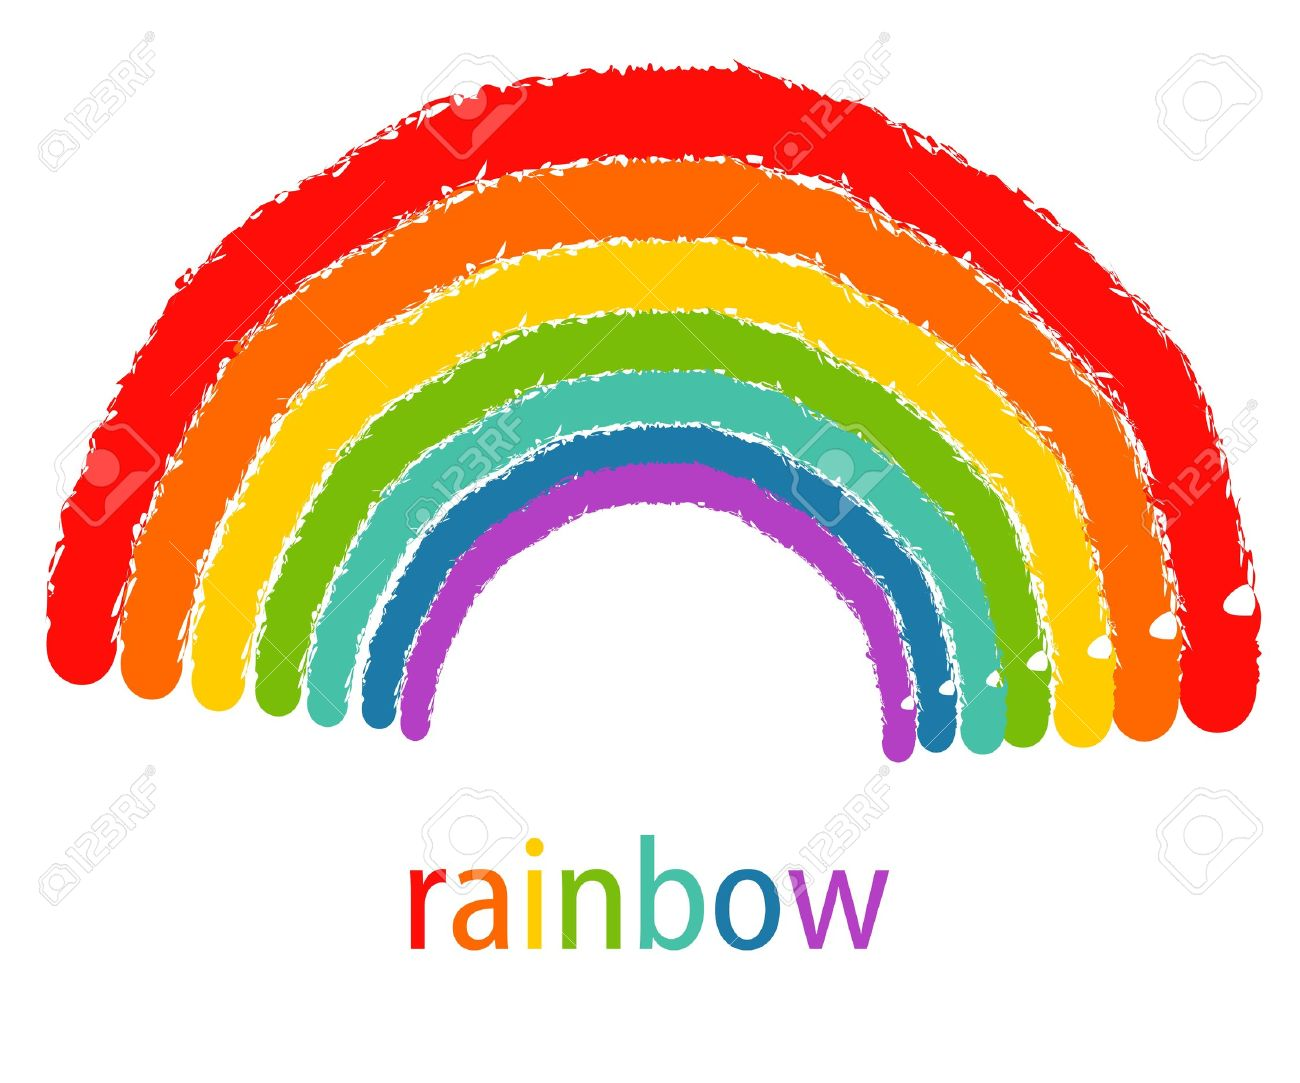 Rainbow Drawing Images At GetDrawings.com